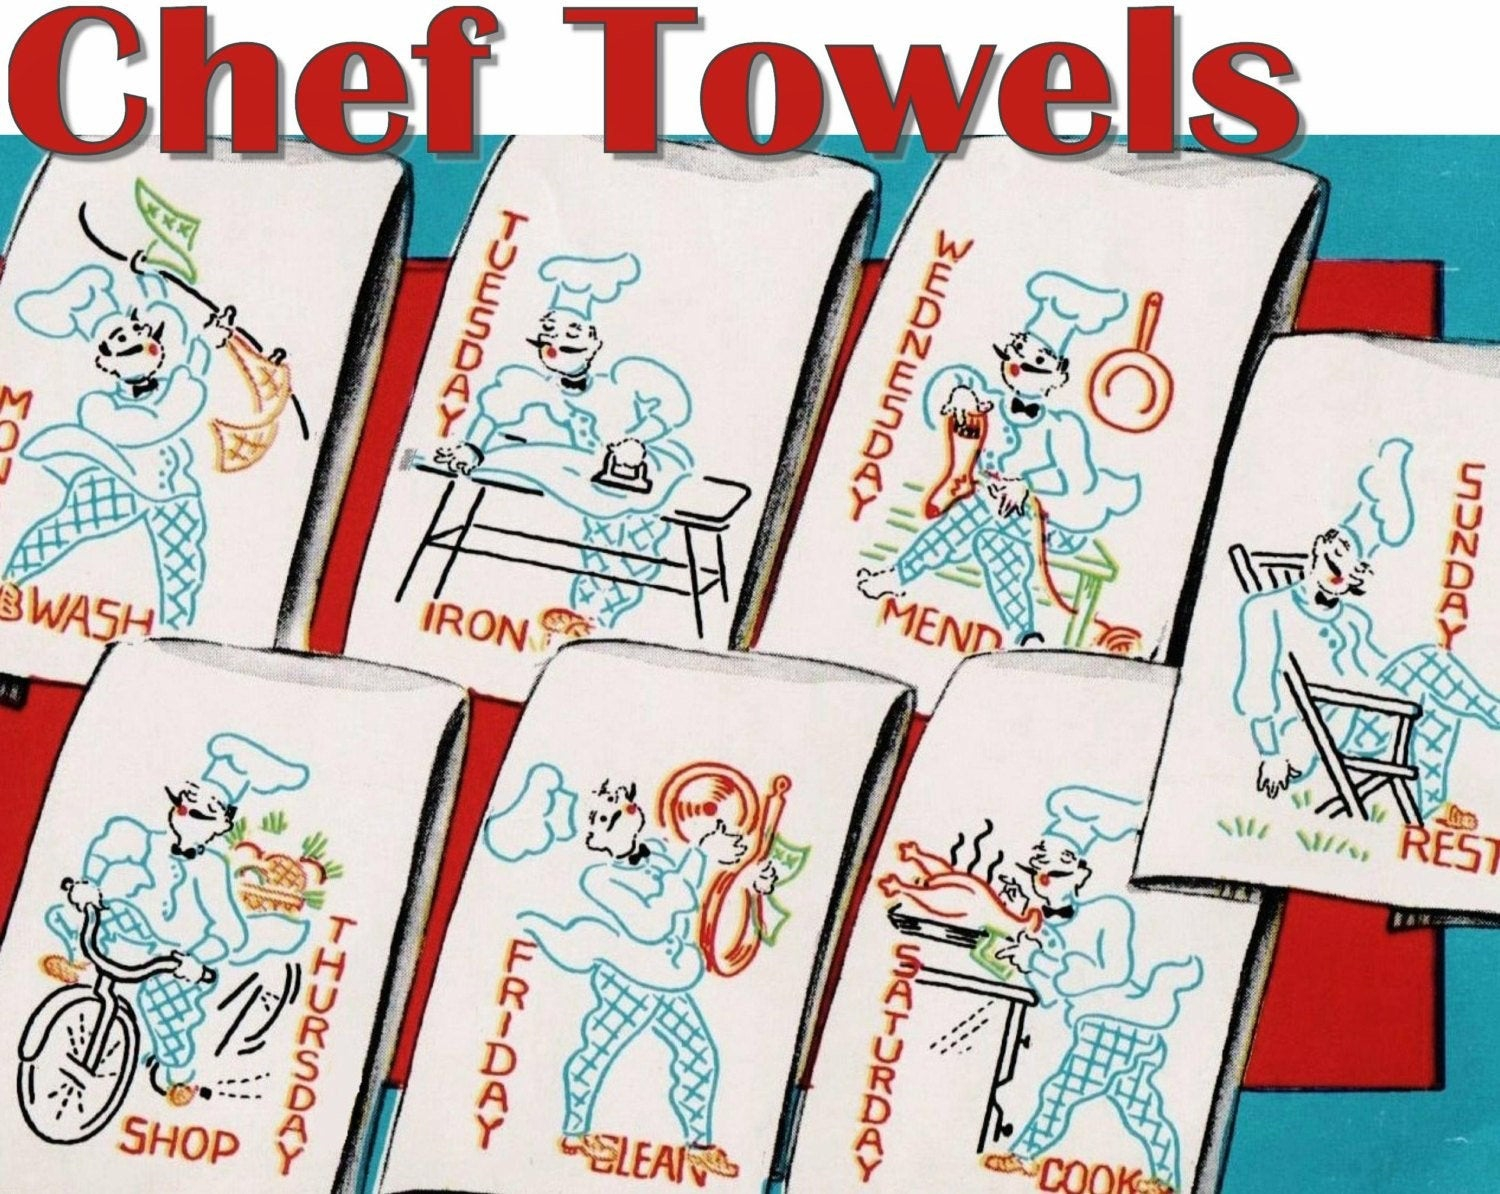 Kitchen Towel Embroidery Patterns Chef Towels Vintage Kitchen Towel Embroidery Pattern Vogart 654 Pdf Instant Download Day Of The Week Towels Vintage Tea Towel Embroidery